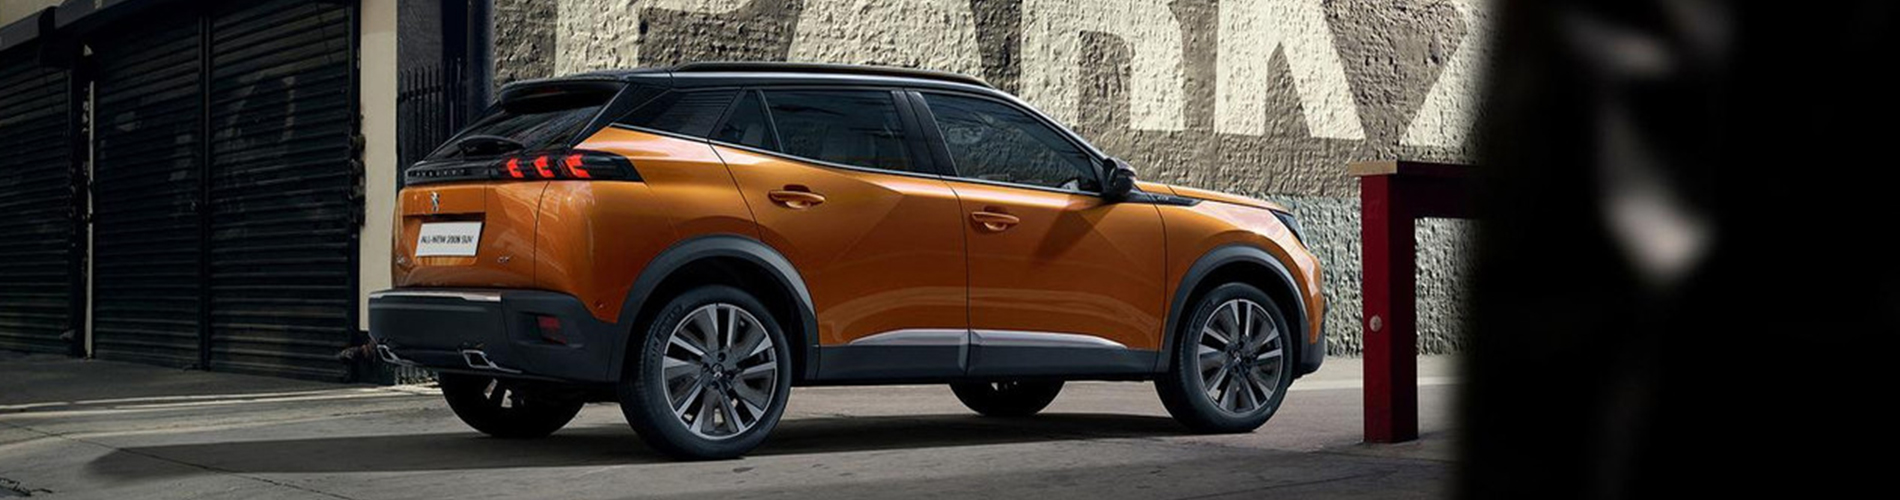 New Peugeot All New 2008 SUV